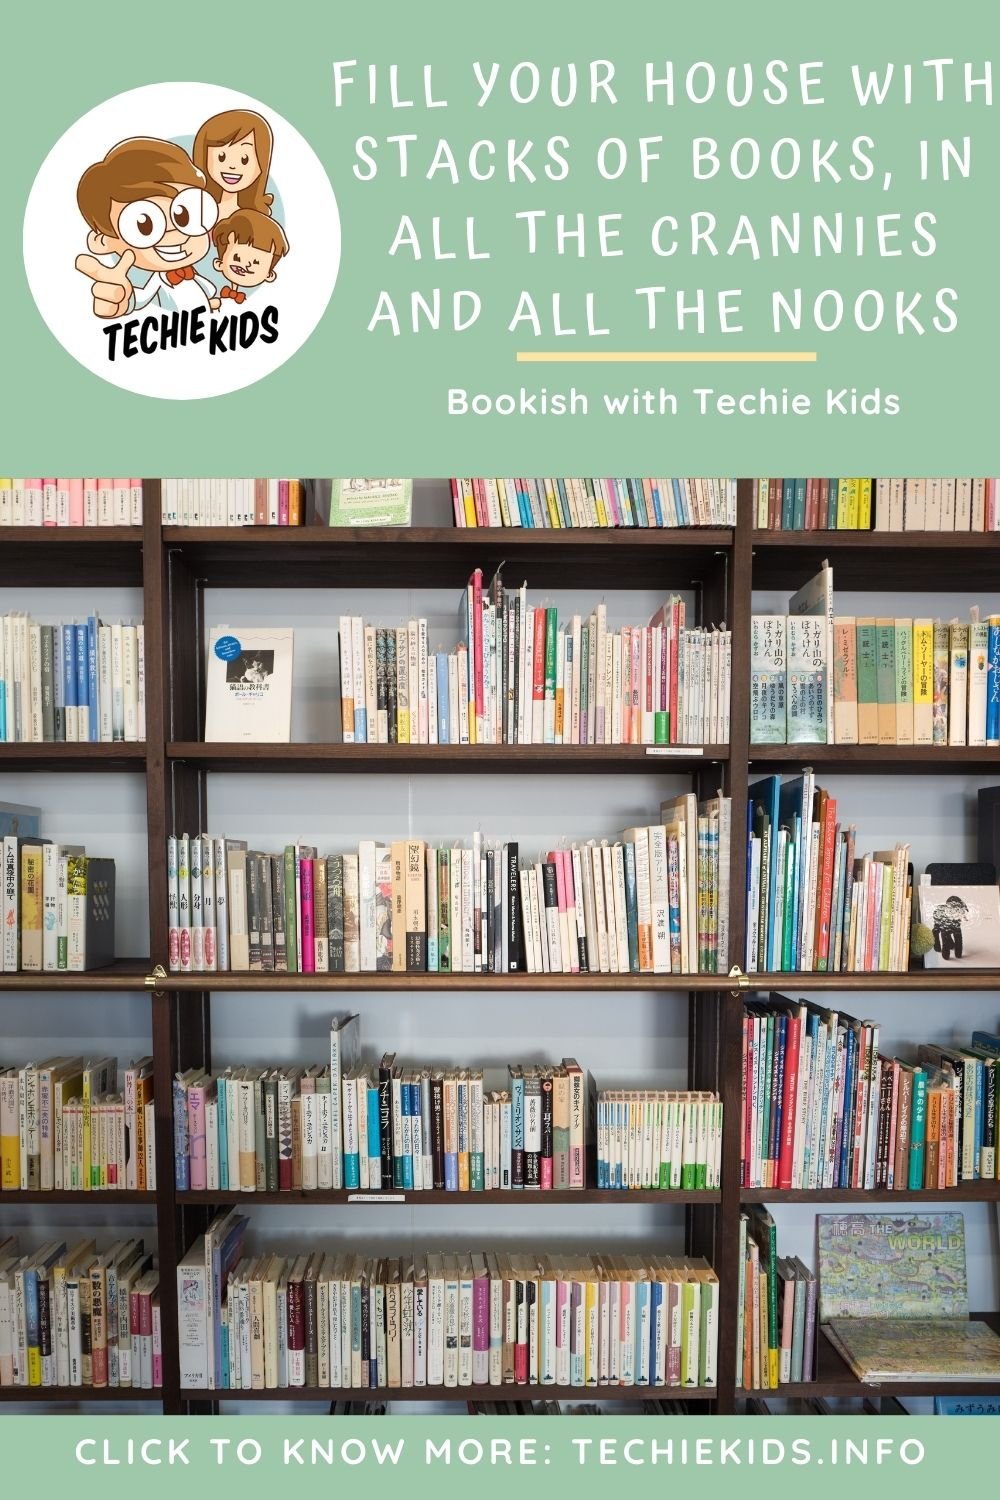 Fill your House with Stacks of Books, in All the Crannies and All the Nooks